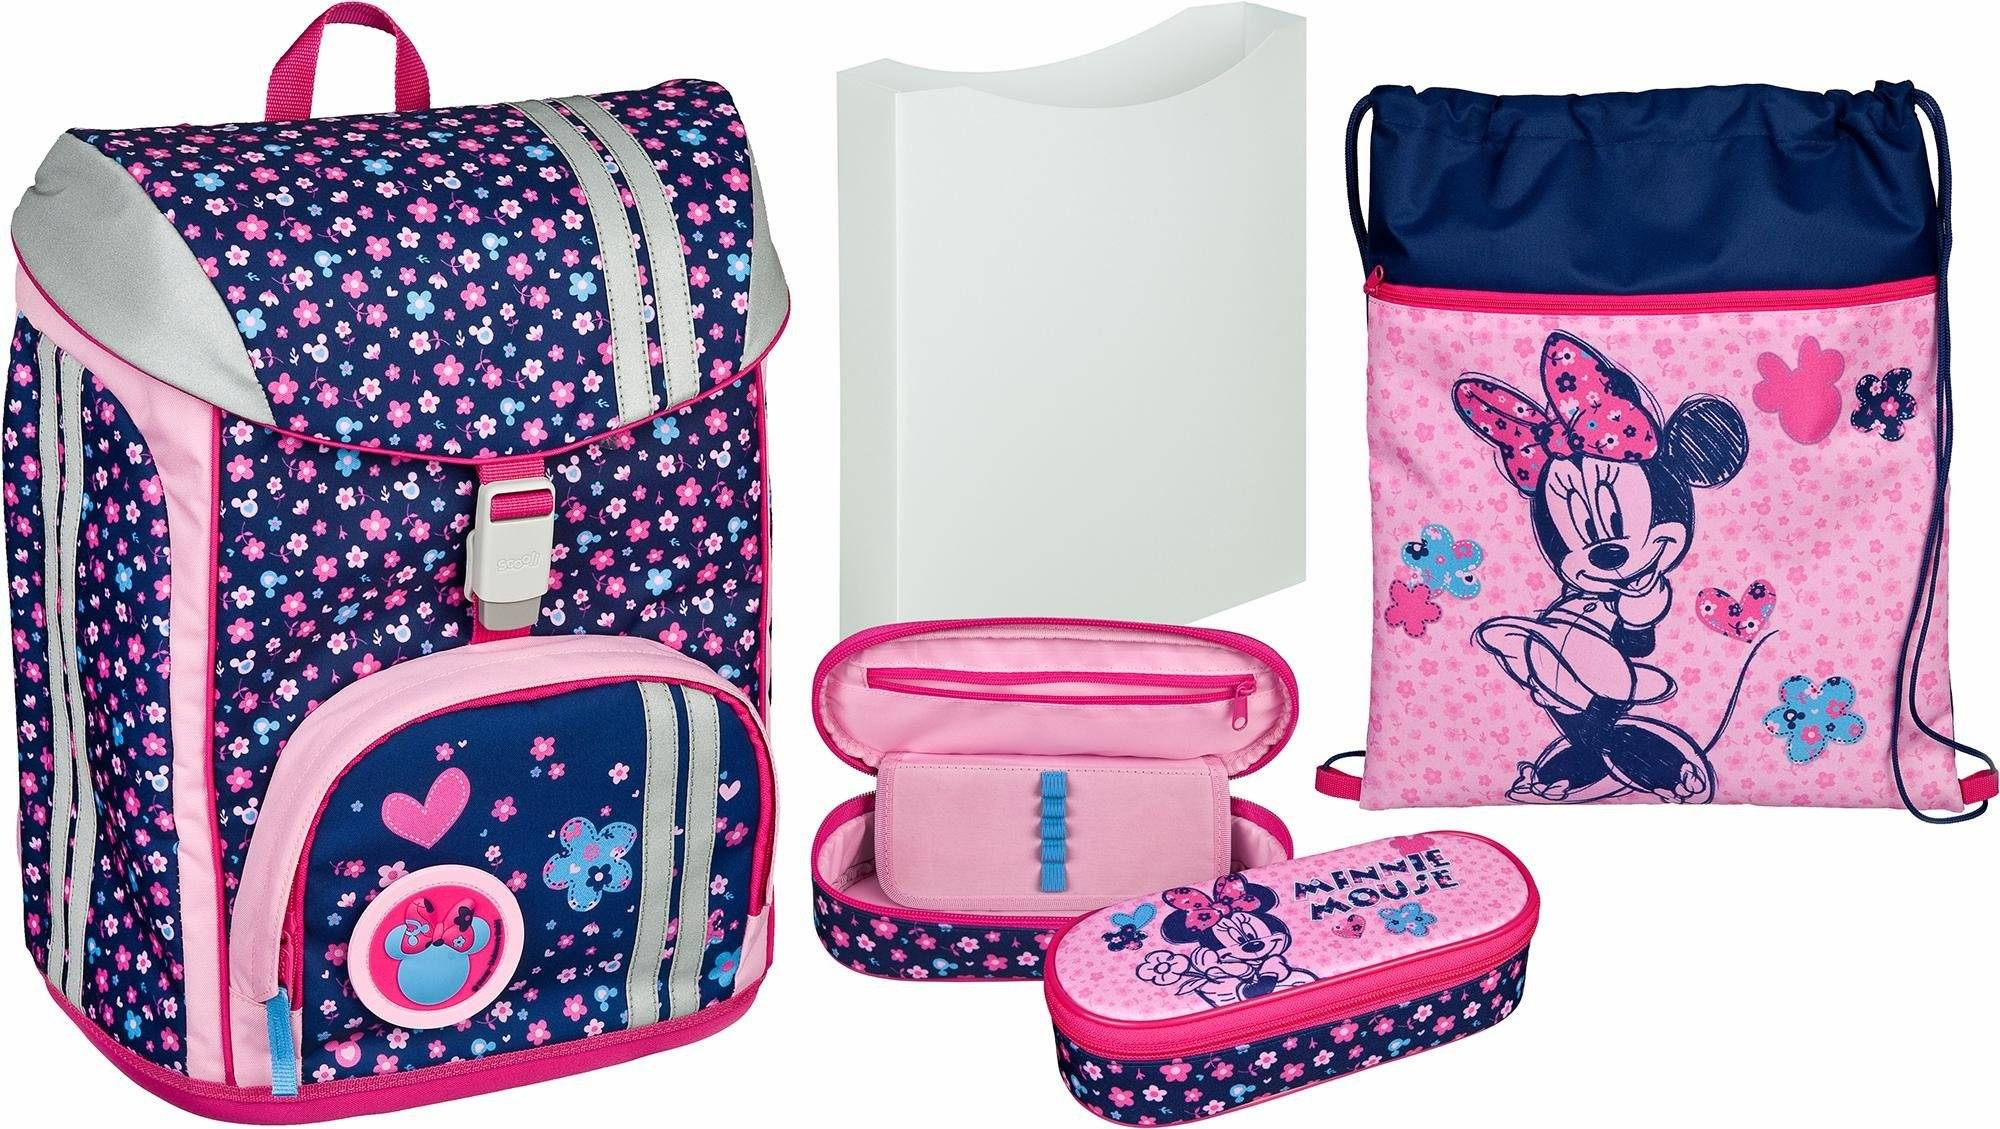 Scooli Schulrucksack Set 5-tlg., »FlexMax Minnie Mouse«, blau/rosa